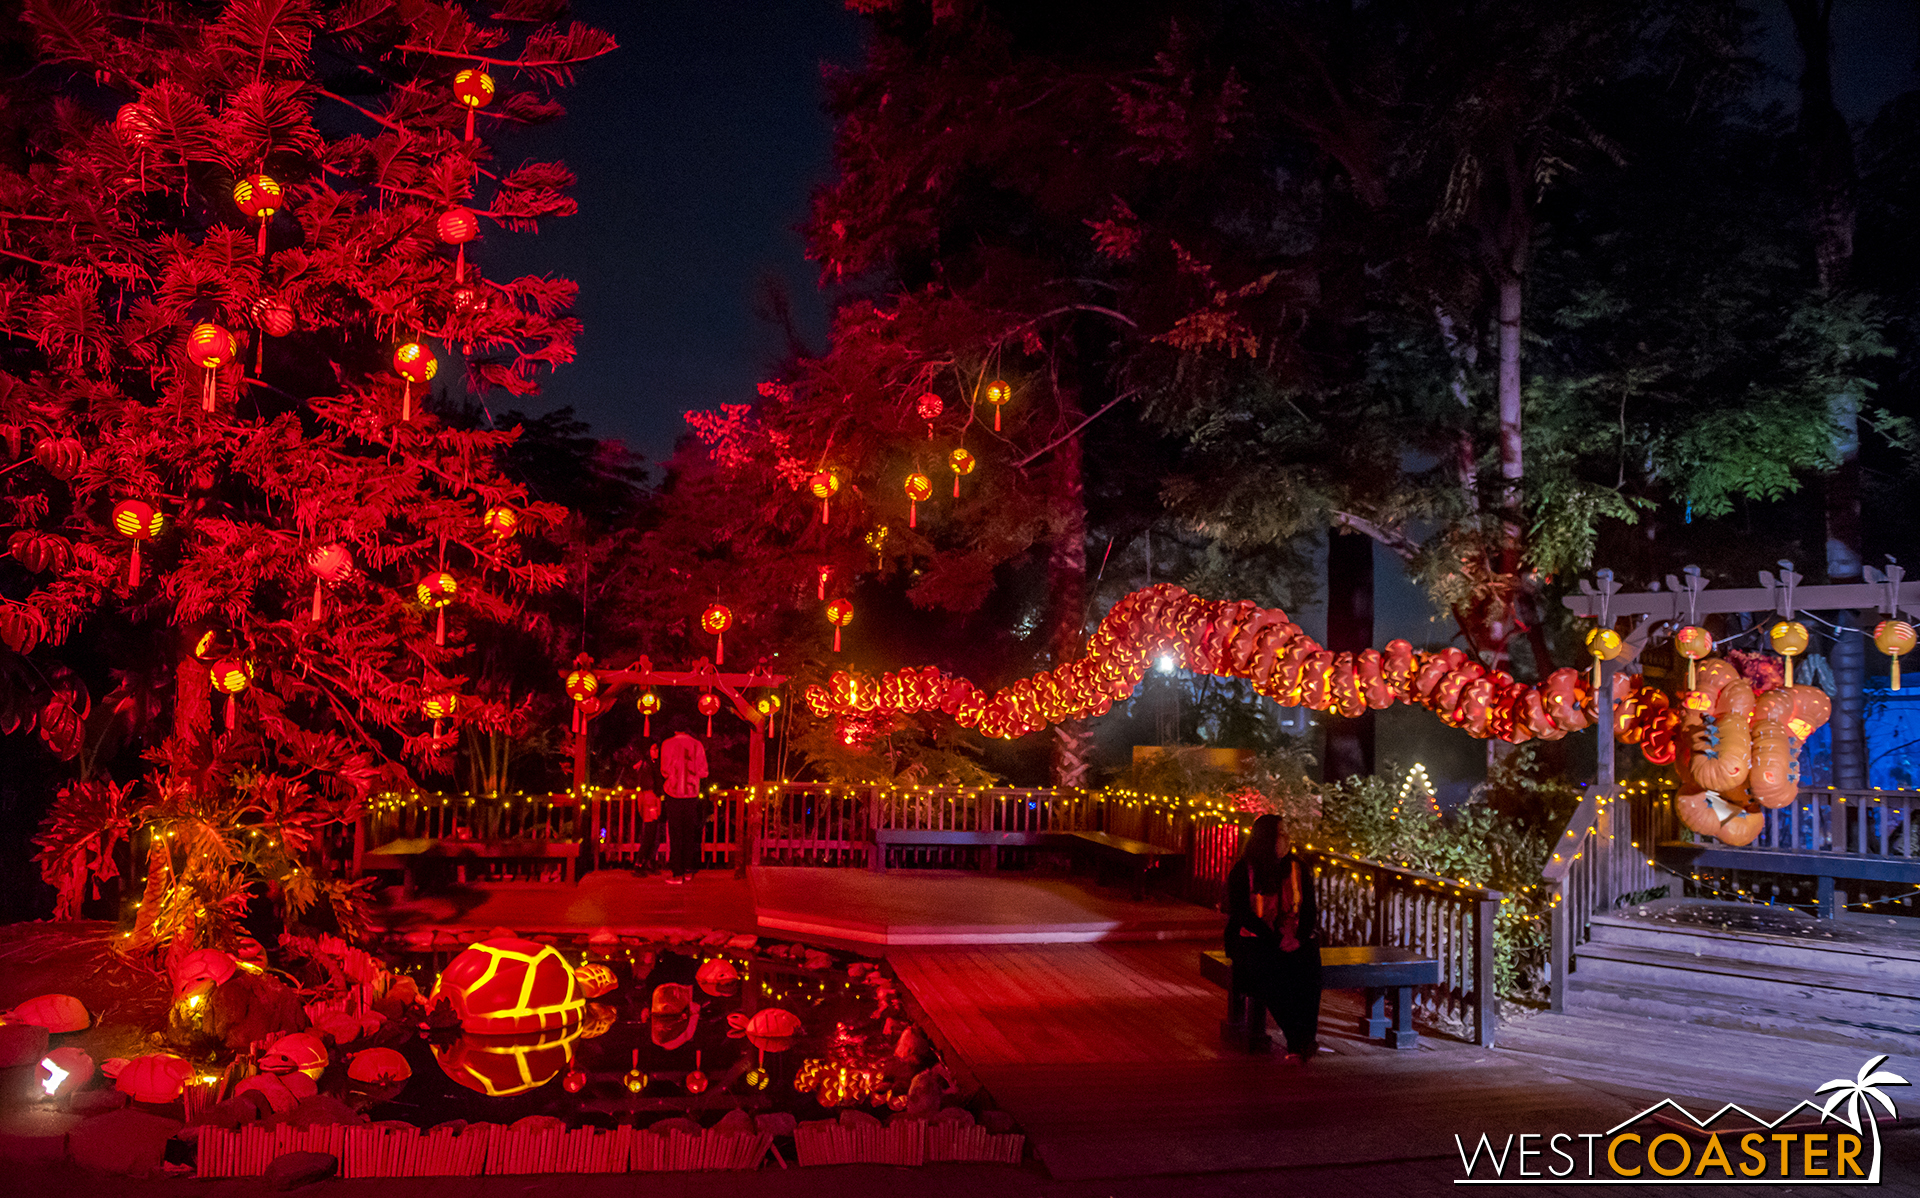 One of seven sections in the Pumpkin Walk at Pumpkin Nights.